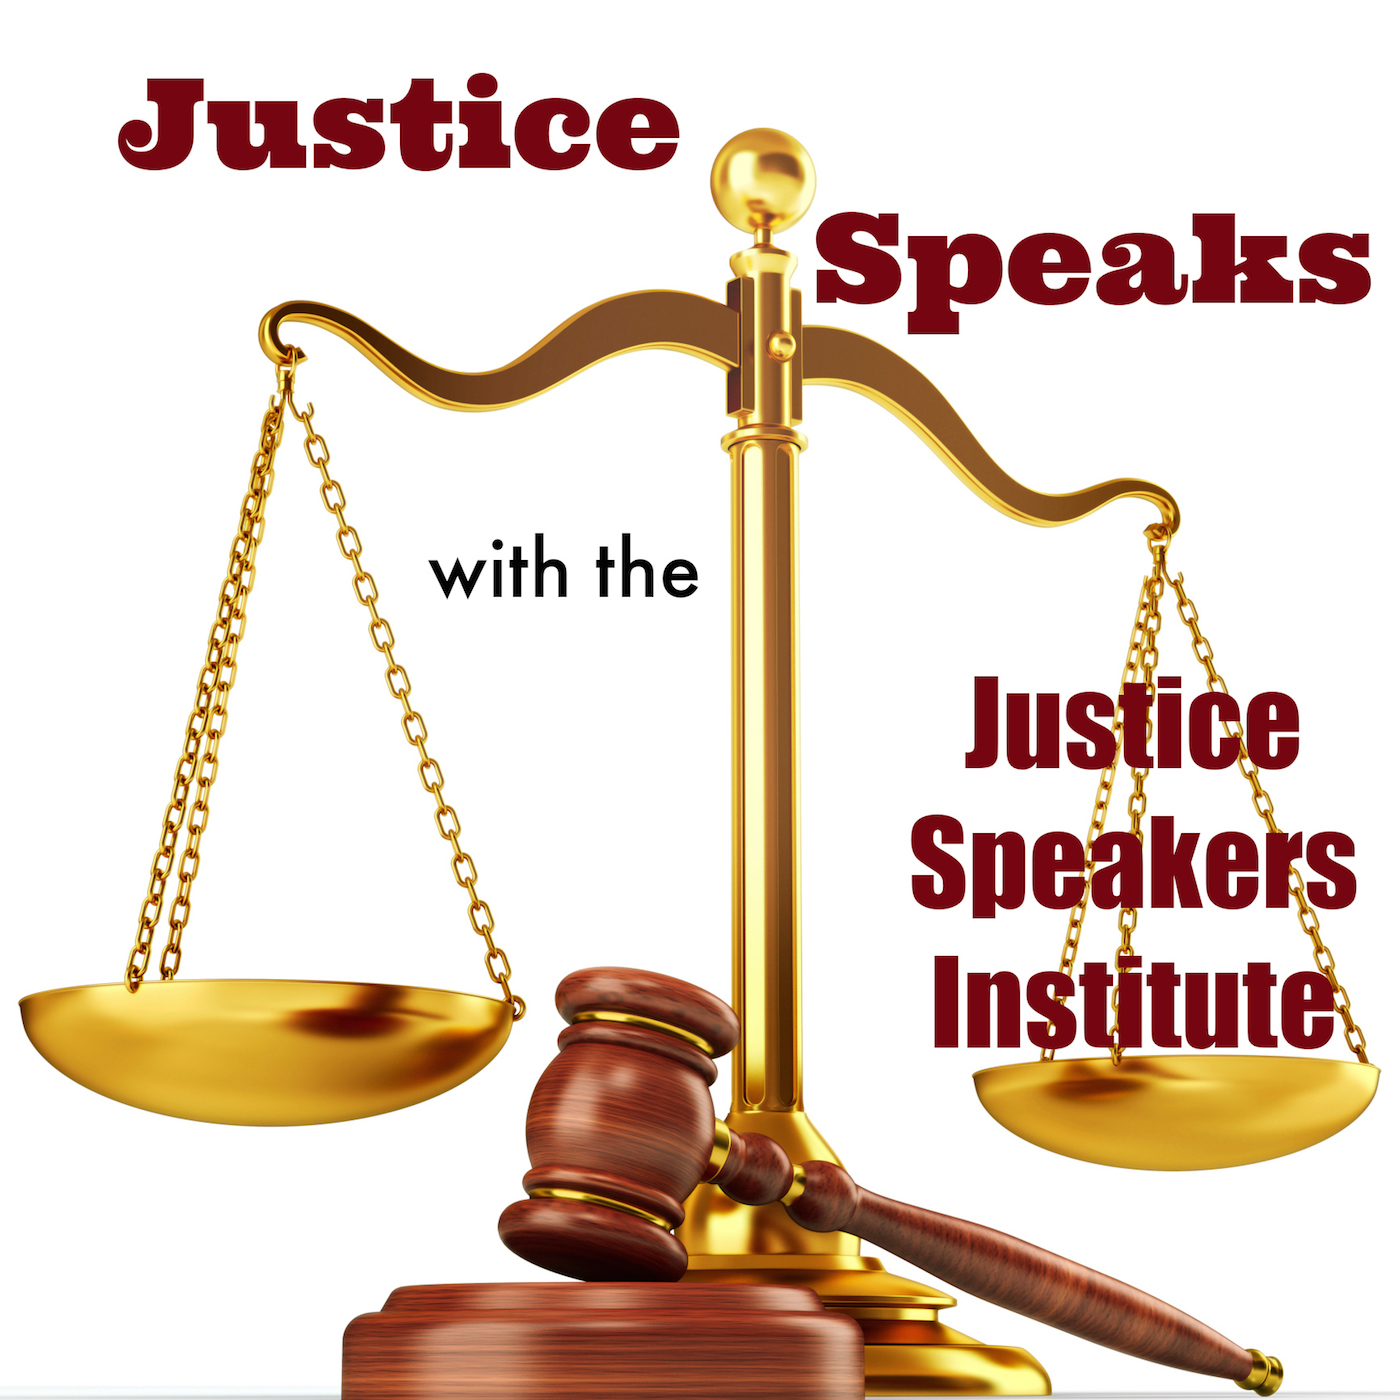 Justice Speakers Institute